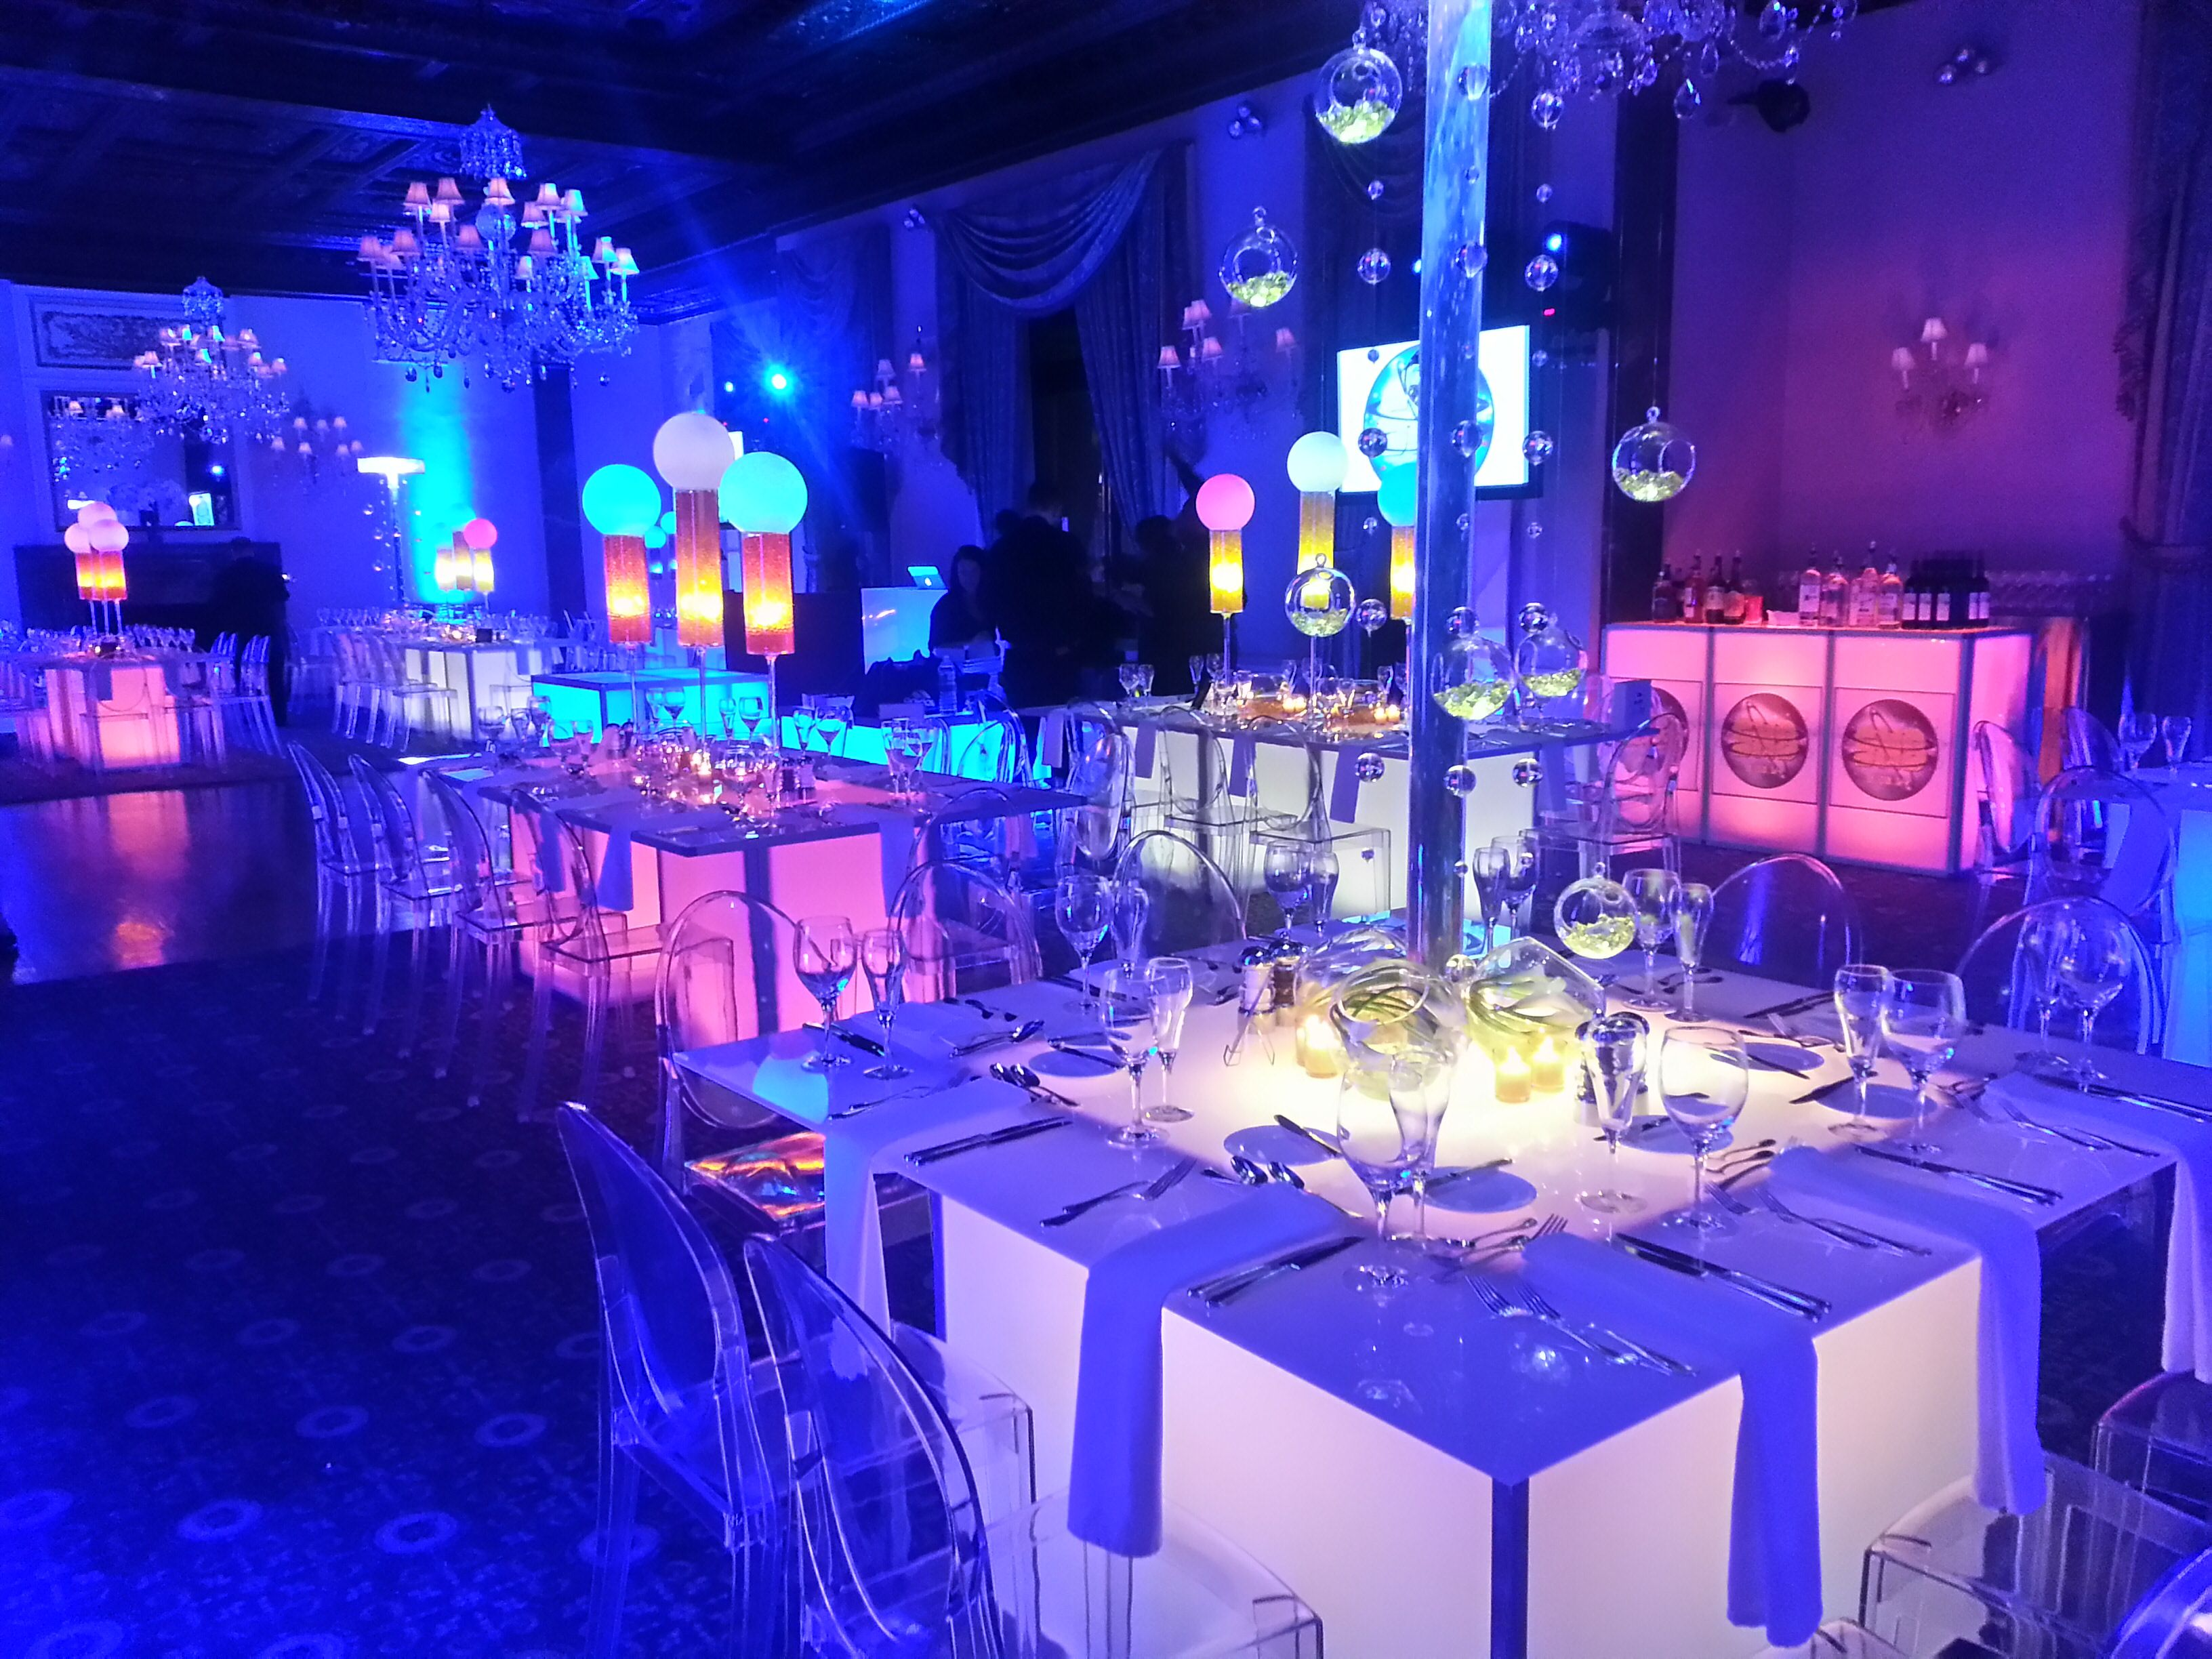 Tags bar and bat mitzvah event decor themes venues - Party Barbara Co Gave The Artifacts Room An Underwater Feel Under The Sea Sweet 16 Pinterest Underwater Sweet 16 And Opening Night